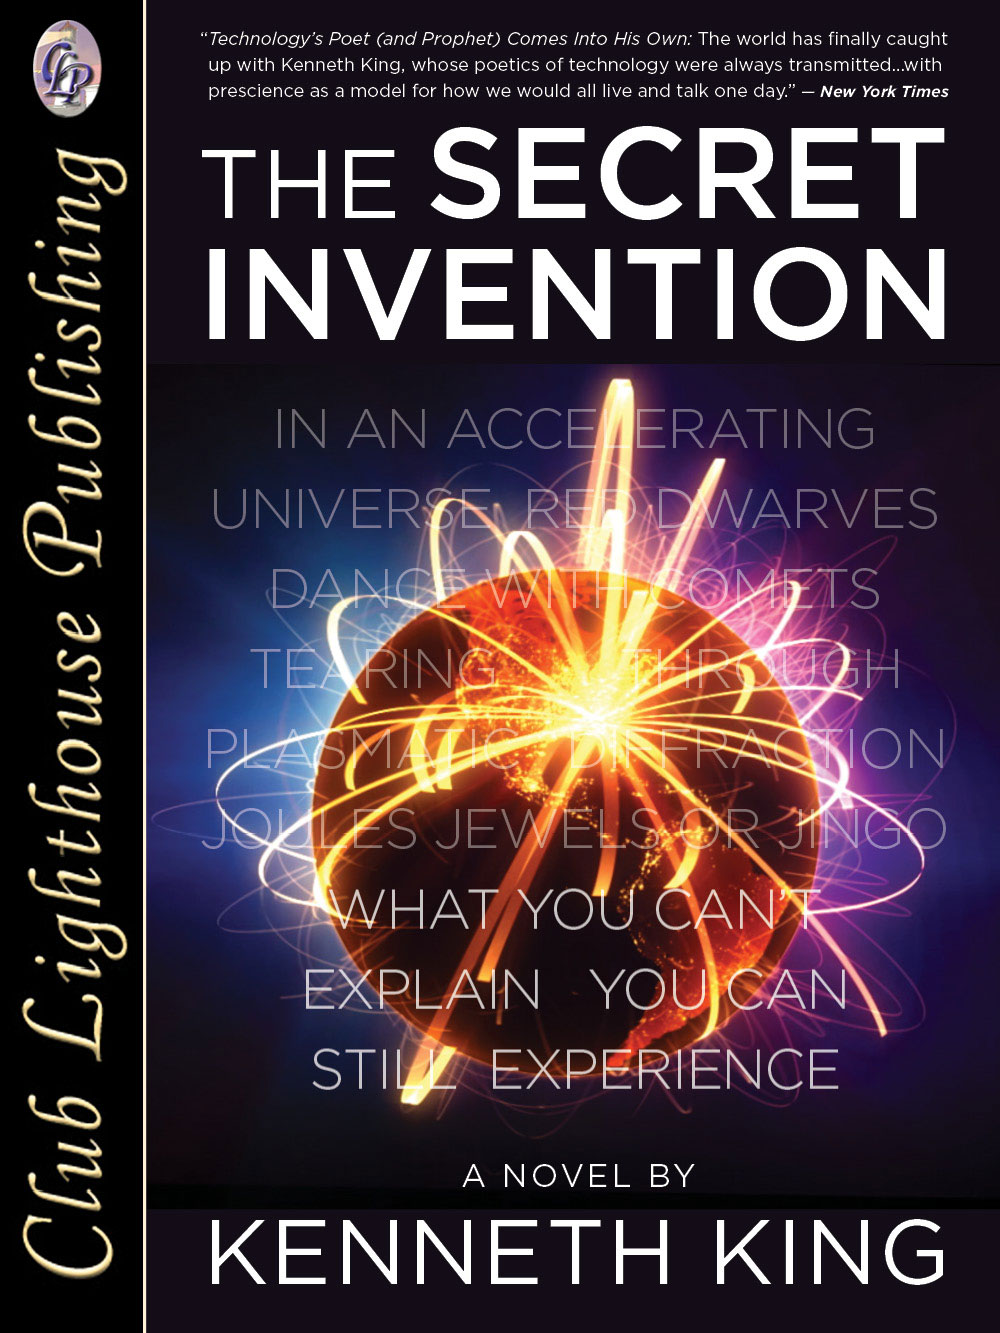 SecretInventionCOVER.jpg